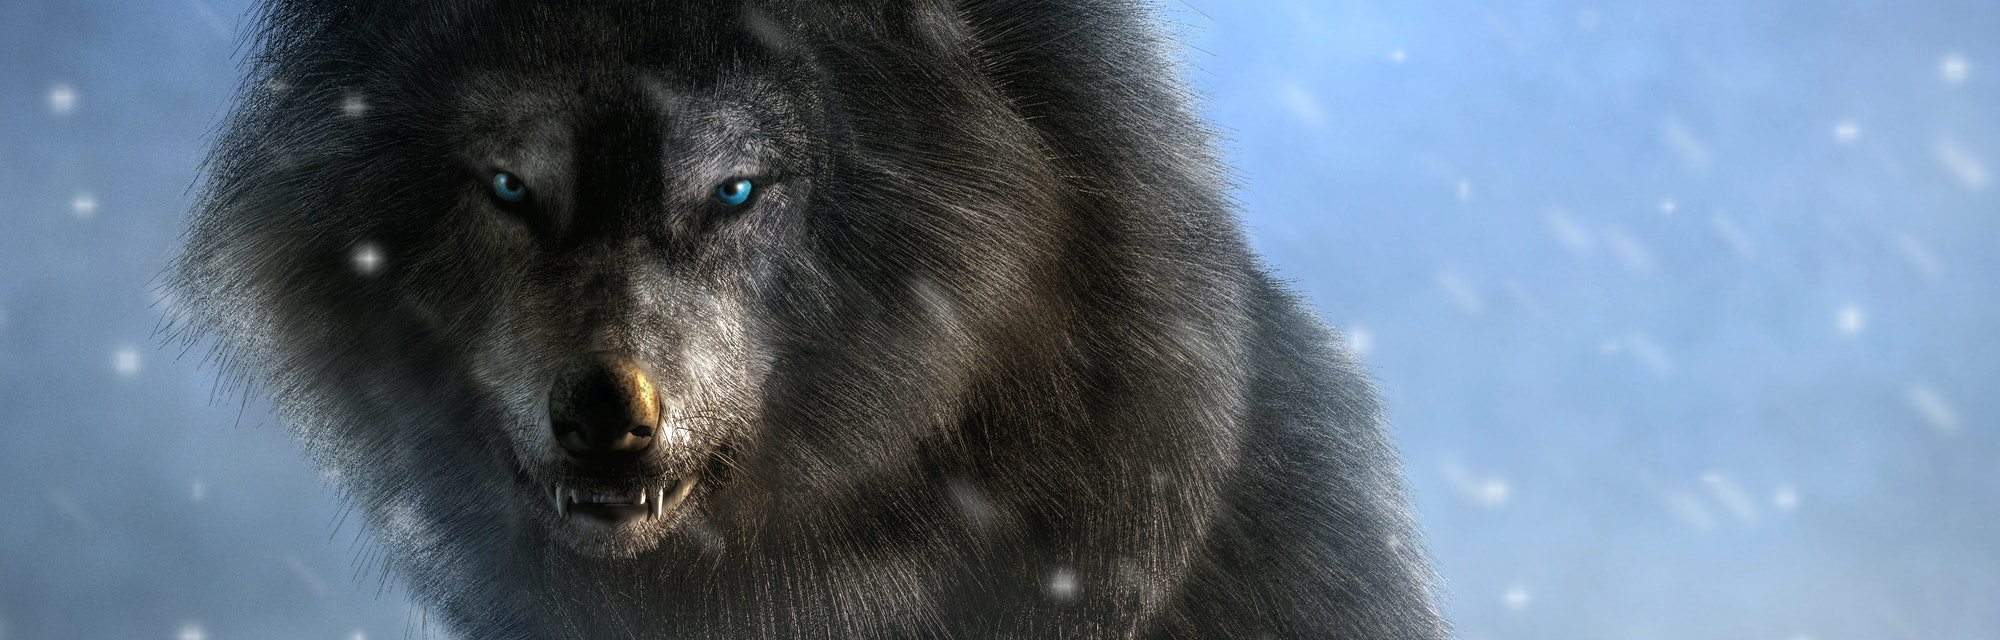 A large shaggy dire wolf bares its wicked teeth as it glares at you with deep blue eyes.